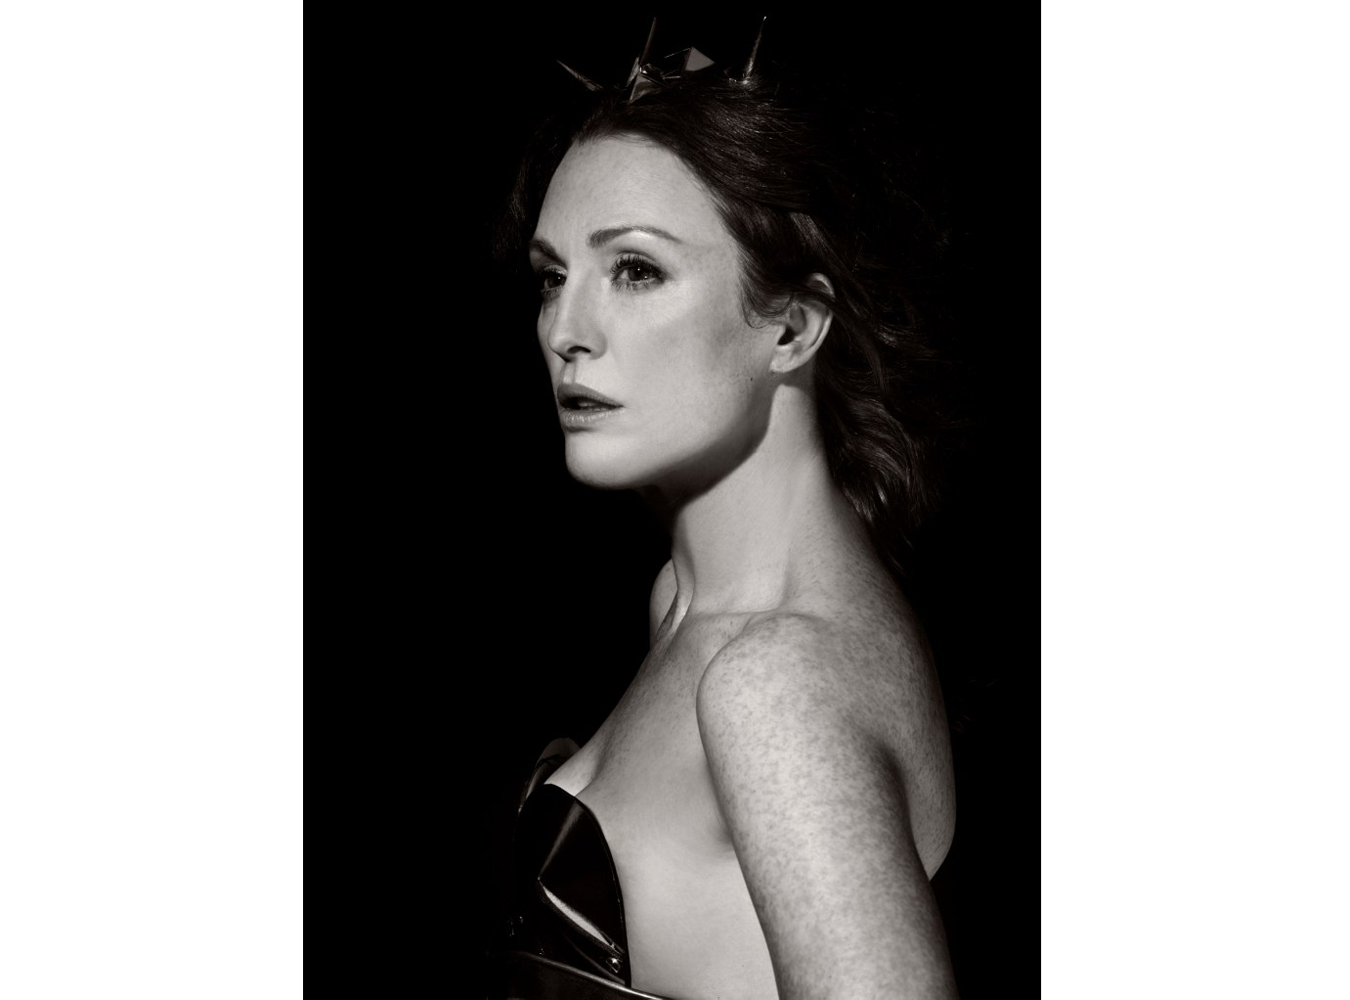 HERA - Julianne Moore